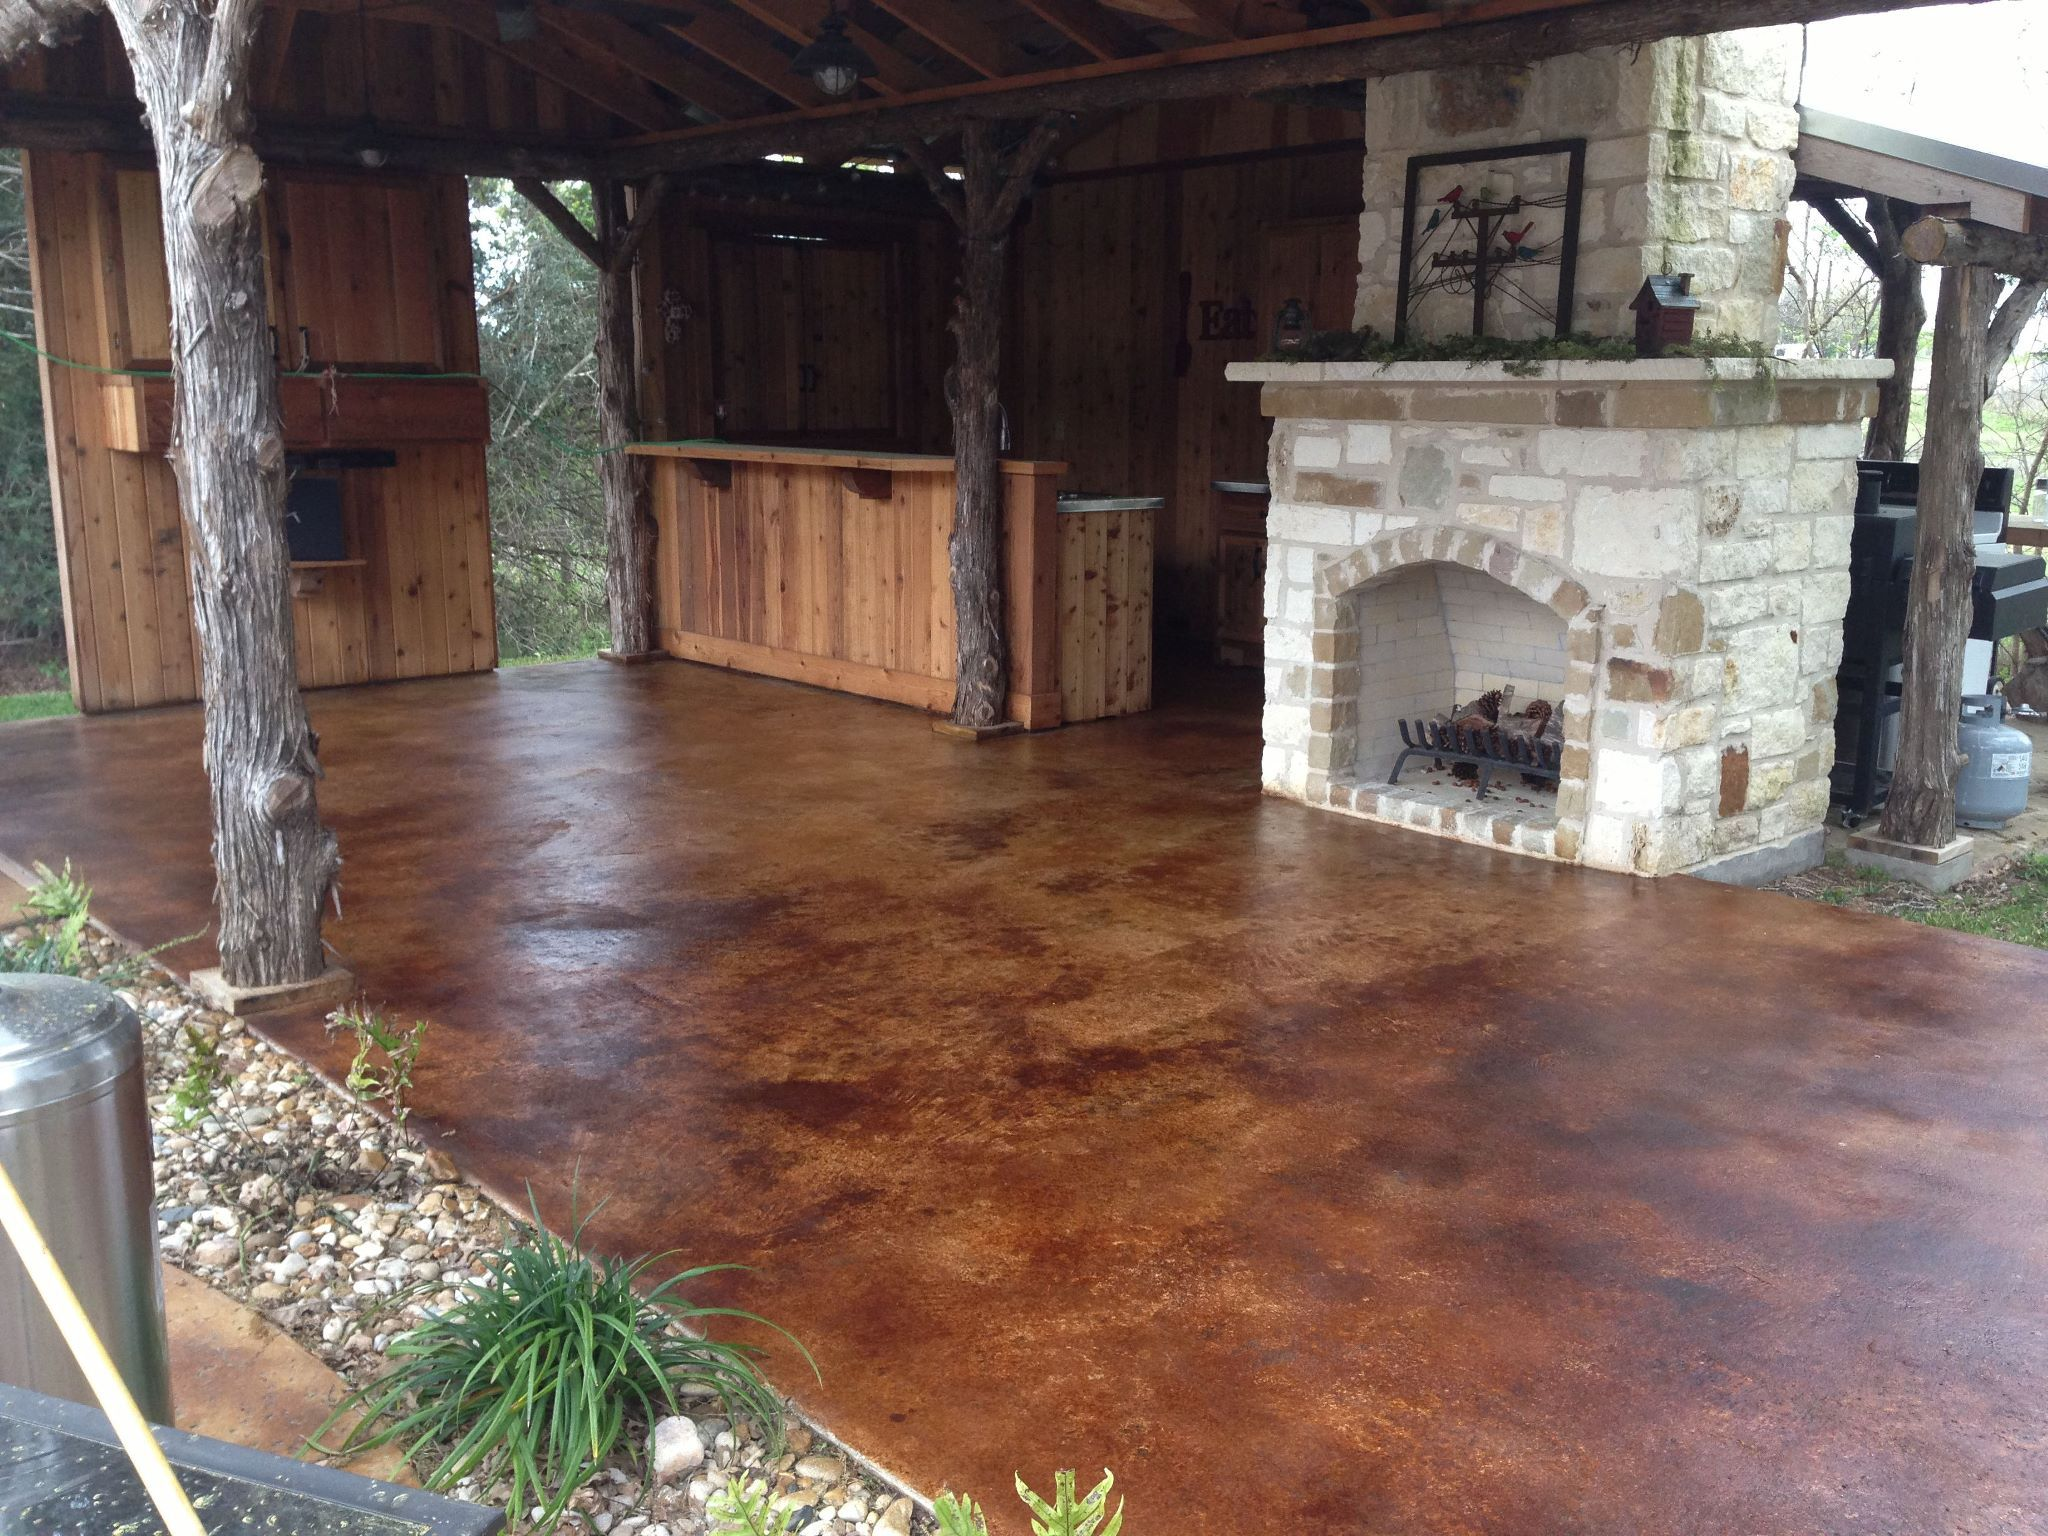 Our Superior Stains Concrete Staining Services Concrete Staining